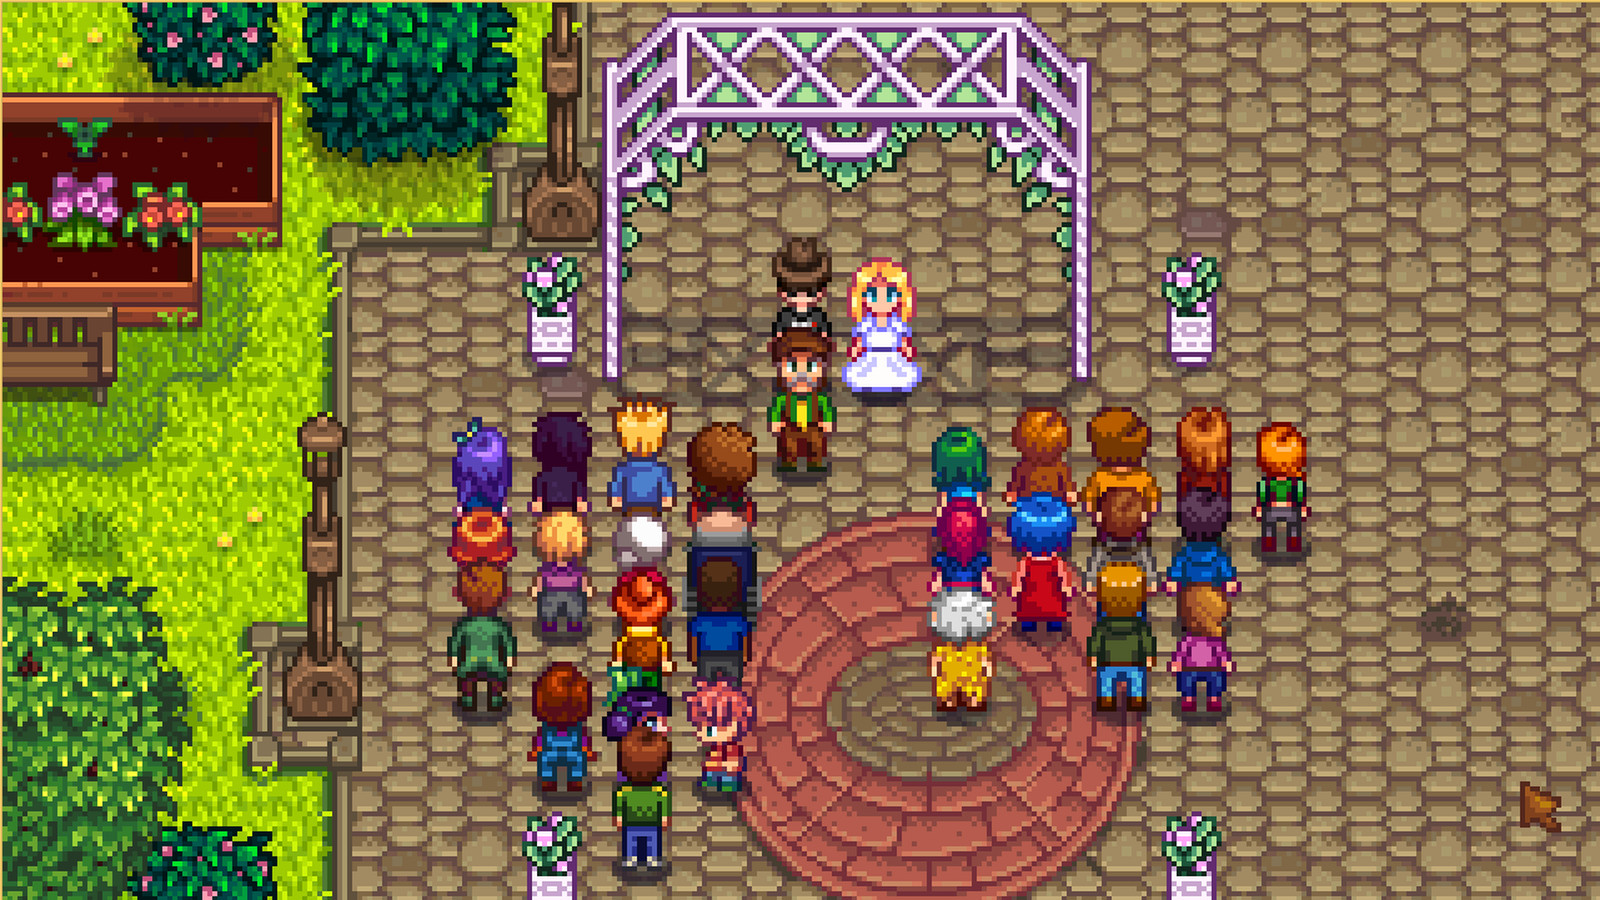 Divorce is now in Stardew Valley, and it's devastating - Polygon